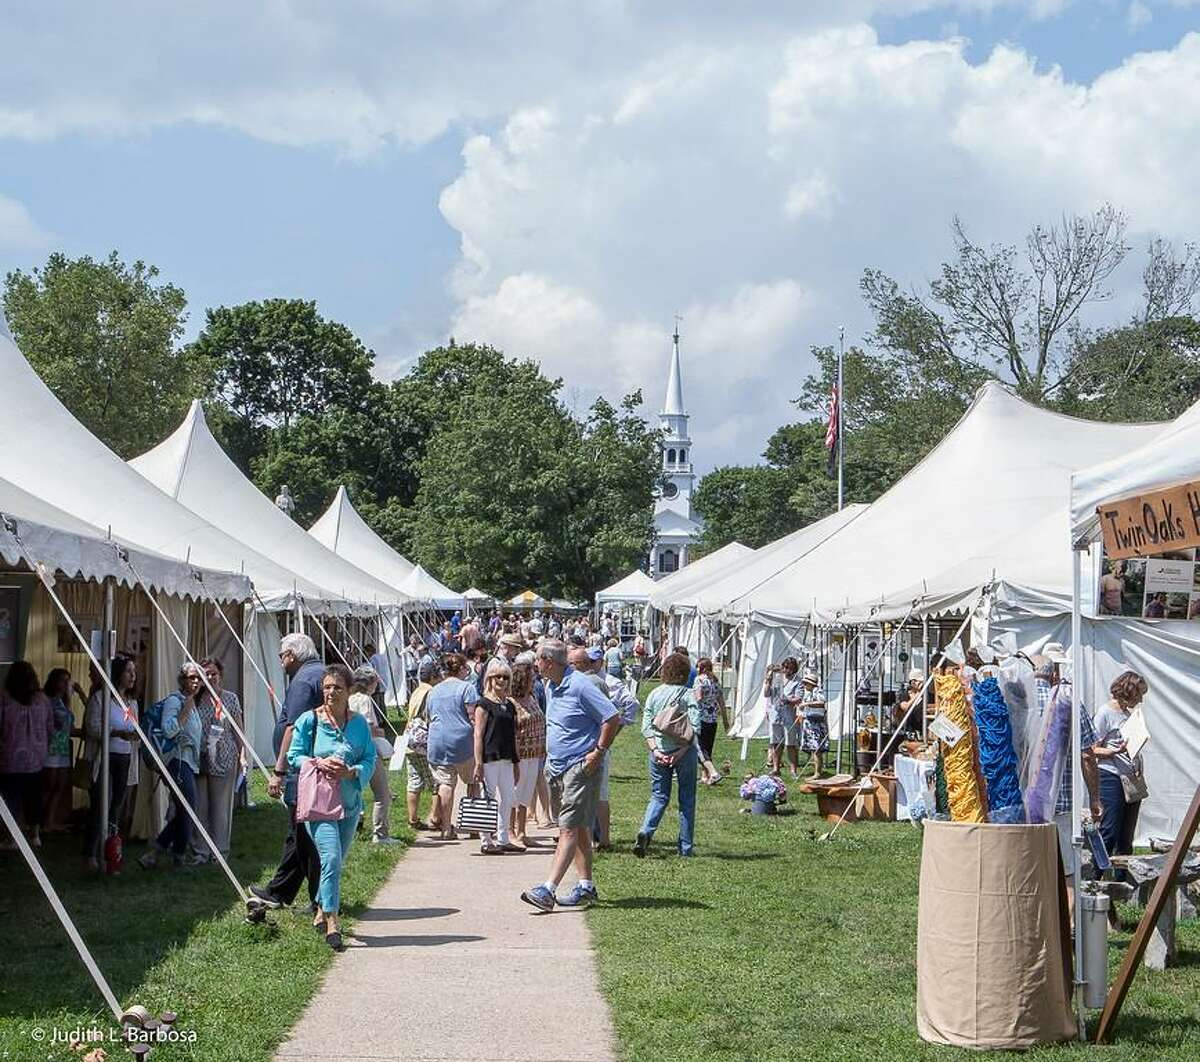 The Guilford Crafts Expo runs Thursday through Sunday. Find out more.